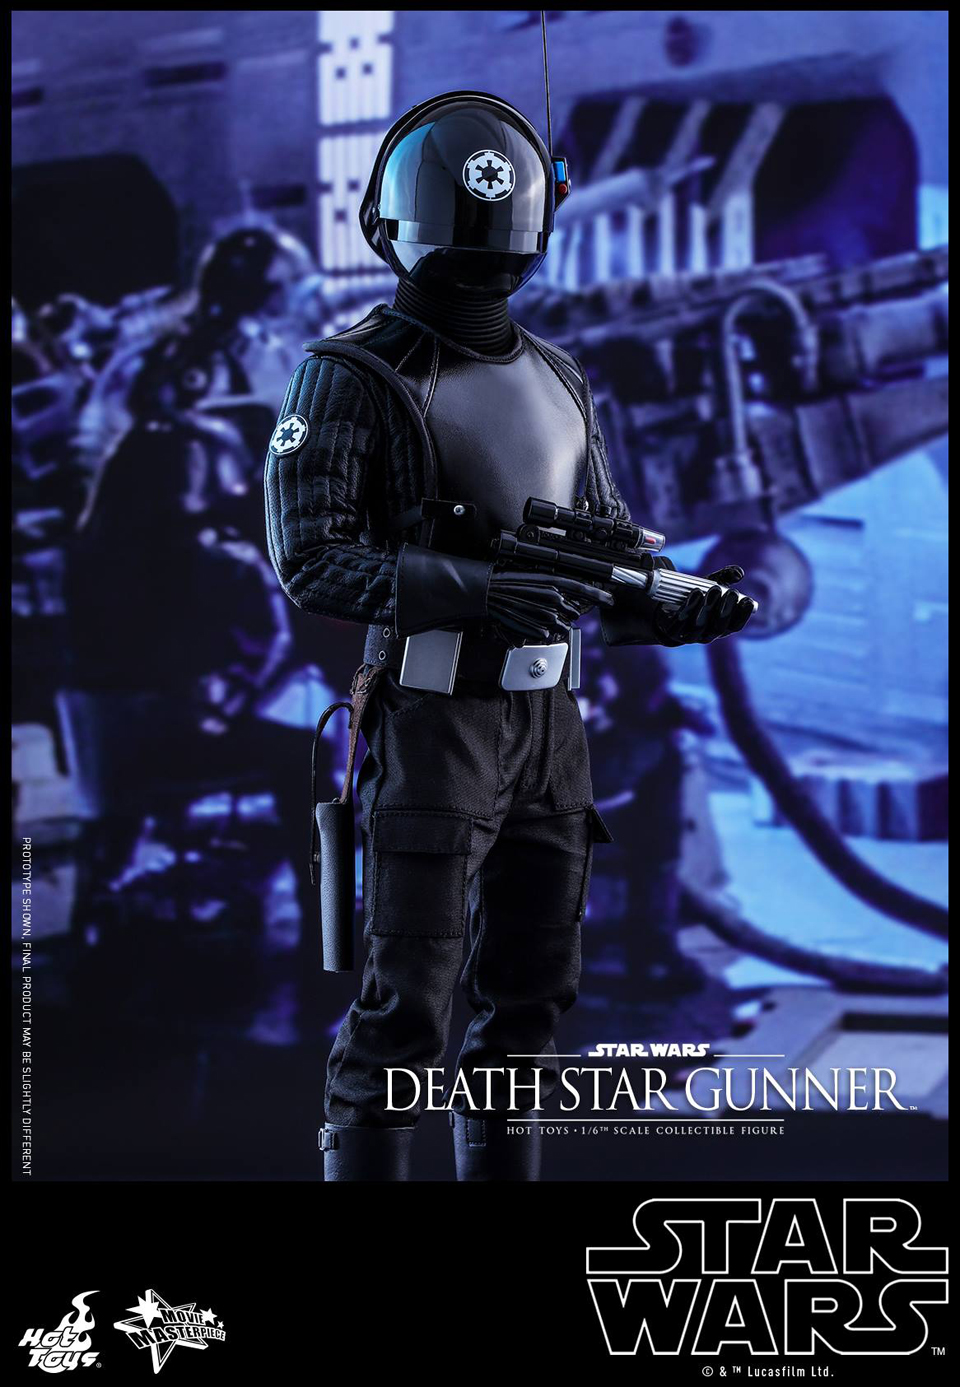 Hot Toys Star Wars Death Star Gunner 1/6 Scale Action Figure